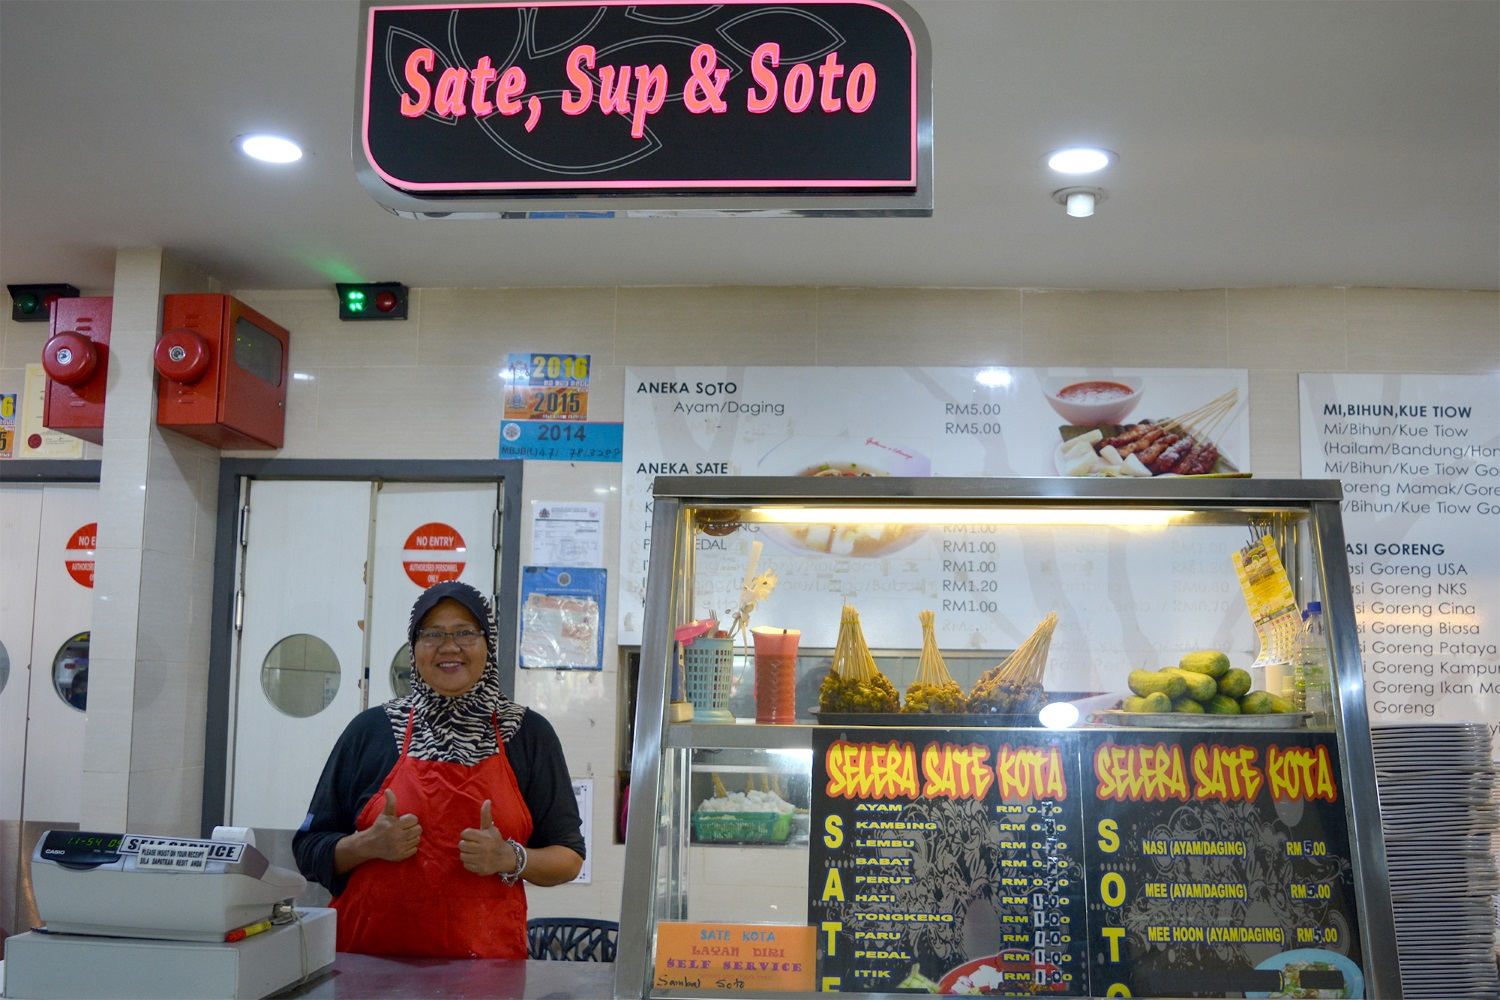 Sate Sup & Soto